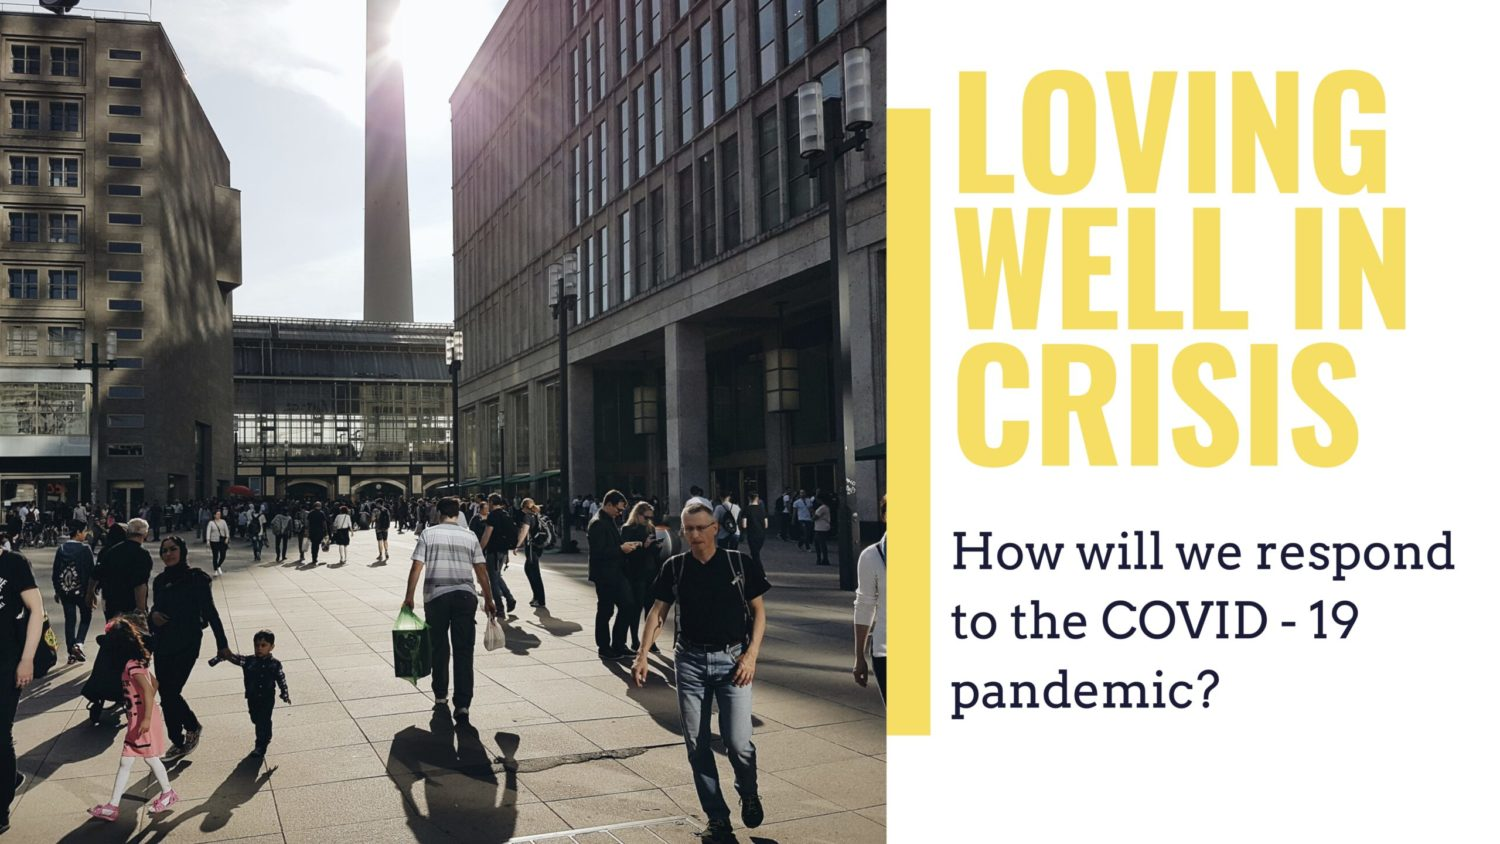 Loving Well in Crisis